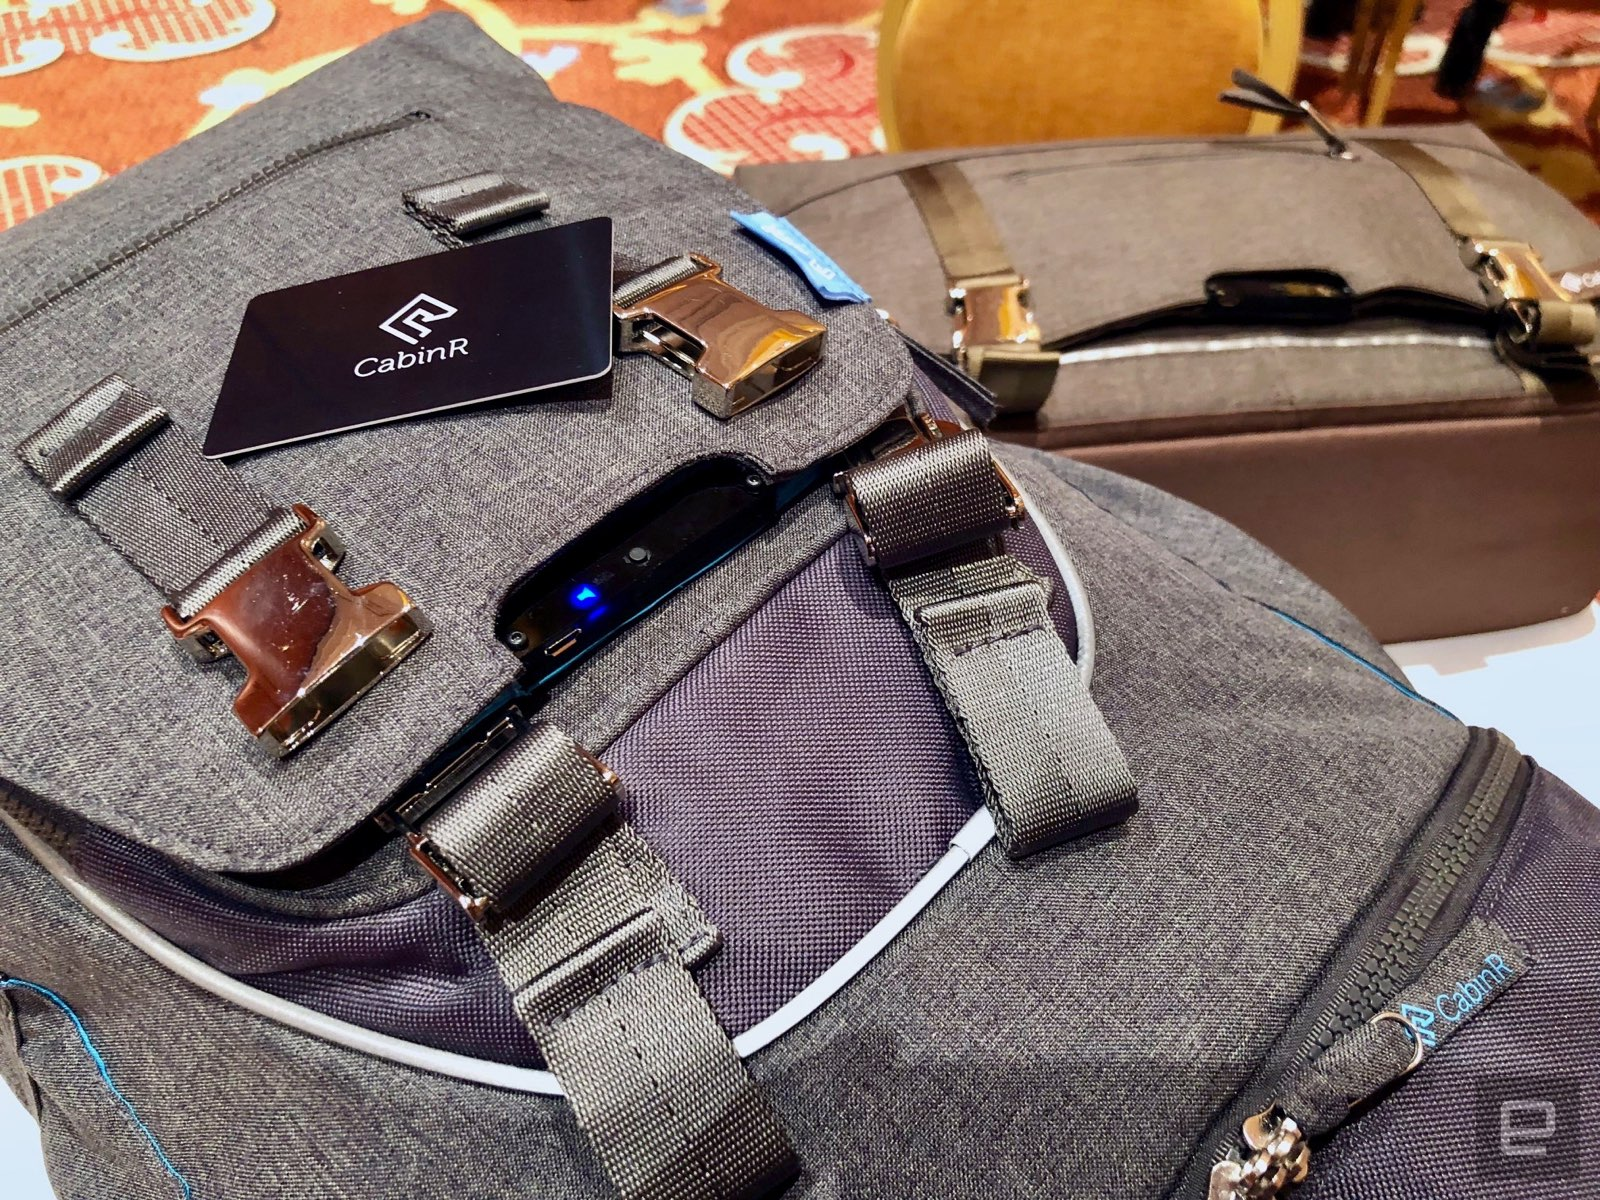 Cabinr 39 s travel bags keep thieves away with an annoying alarm f3news - How to keep thieves away from your home ...